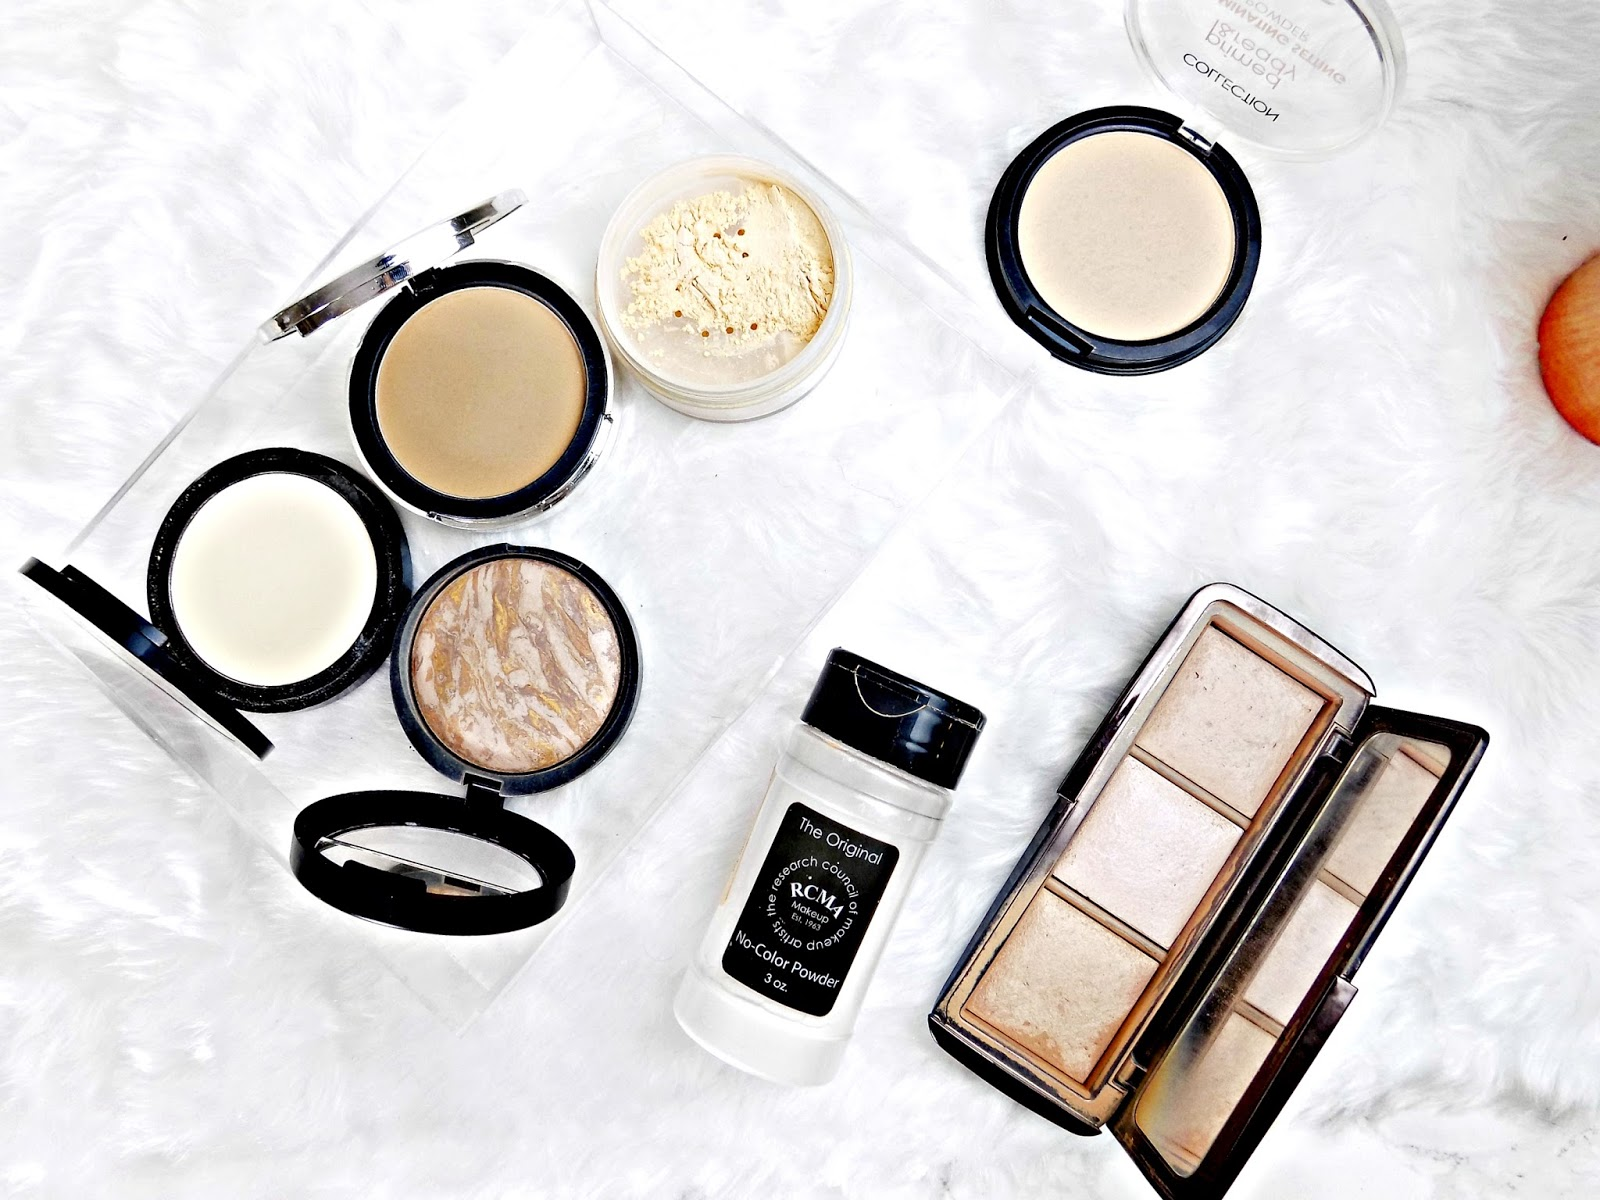 The Best Powders for Dehydrated / Dry Skin